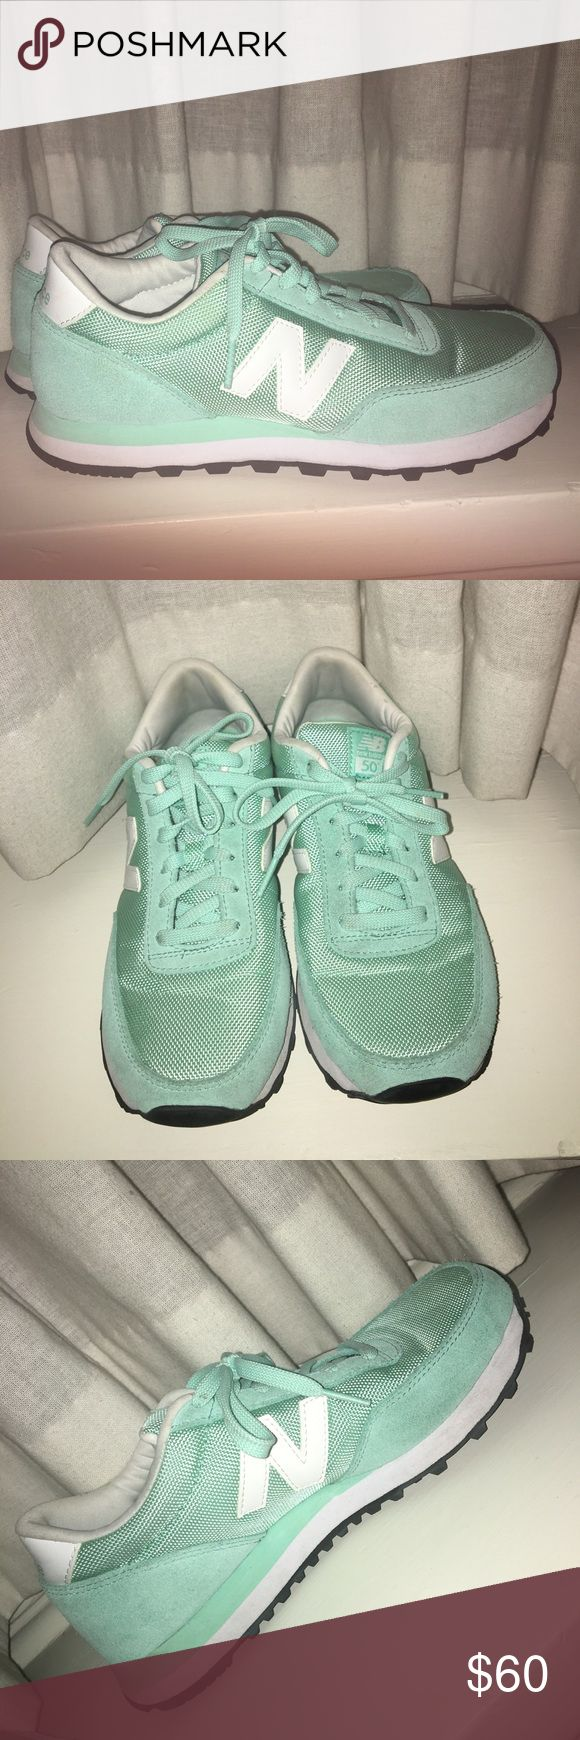 New balance recycled shoes - Mint Green New Balance Sneakers New Balance 501 Sneakers Barely Worn Perfect Condition New